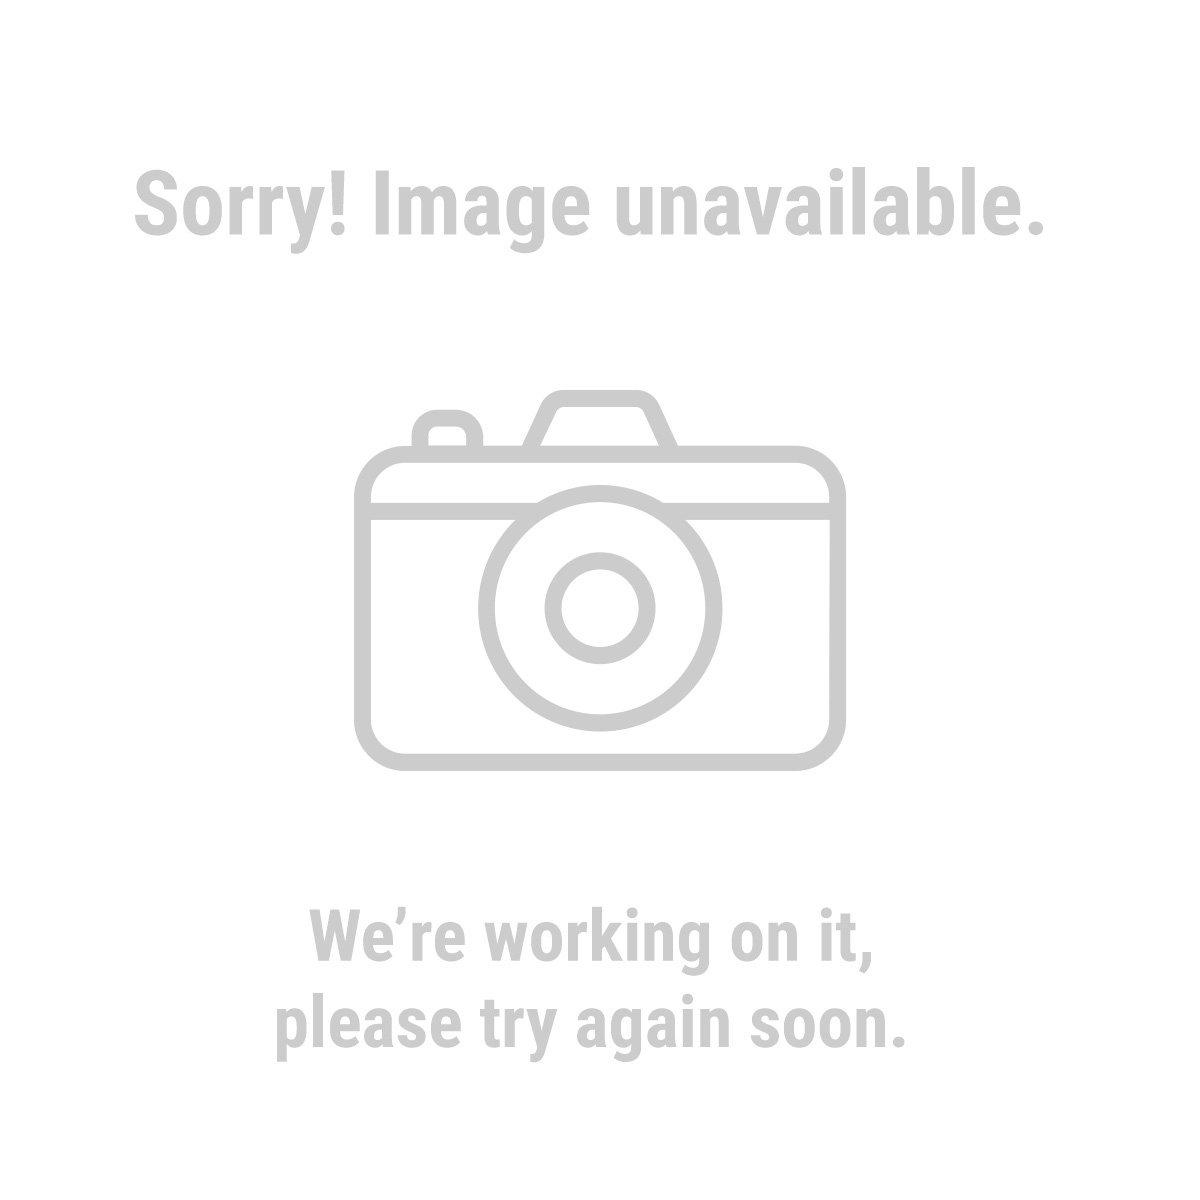 50 ft x 14 gauge indooroutdoor extension cord 50 ft x 12 gauge multi outlet extension cord with indicator light greentooth Images